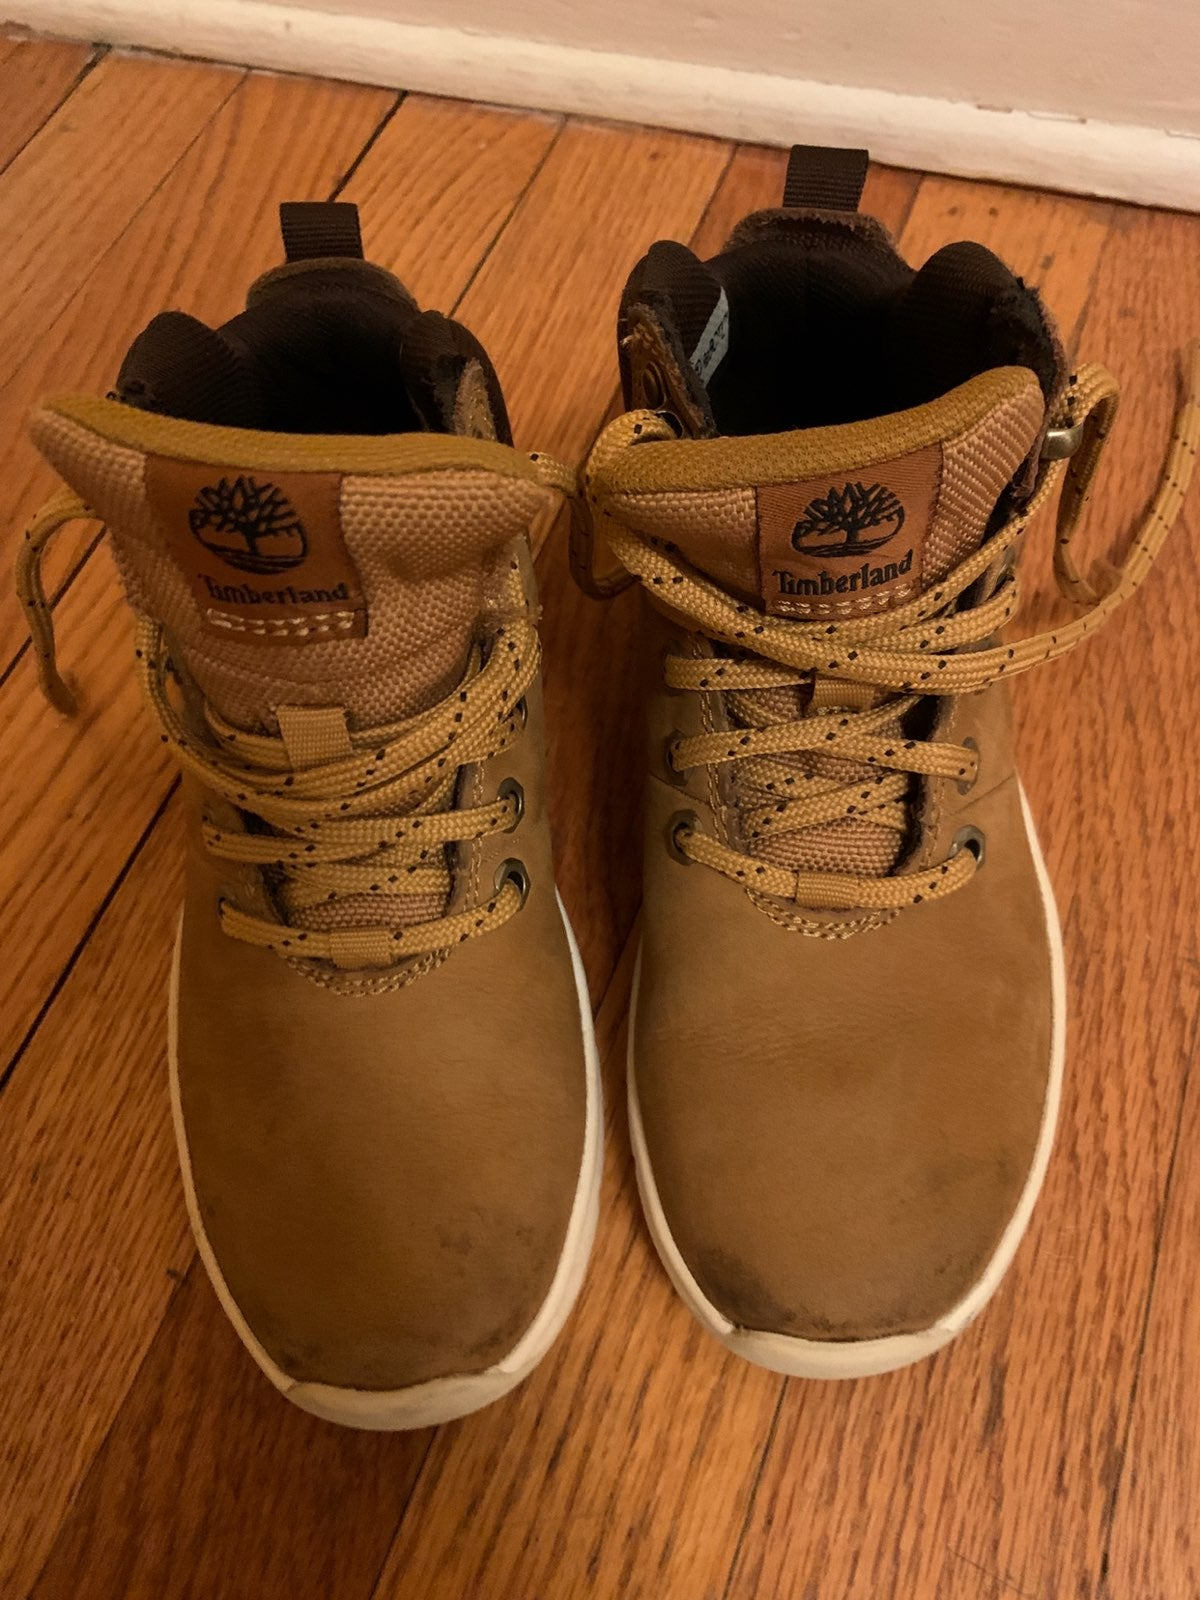 Little boys Authentic Timberland boots13